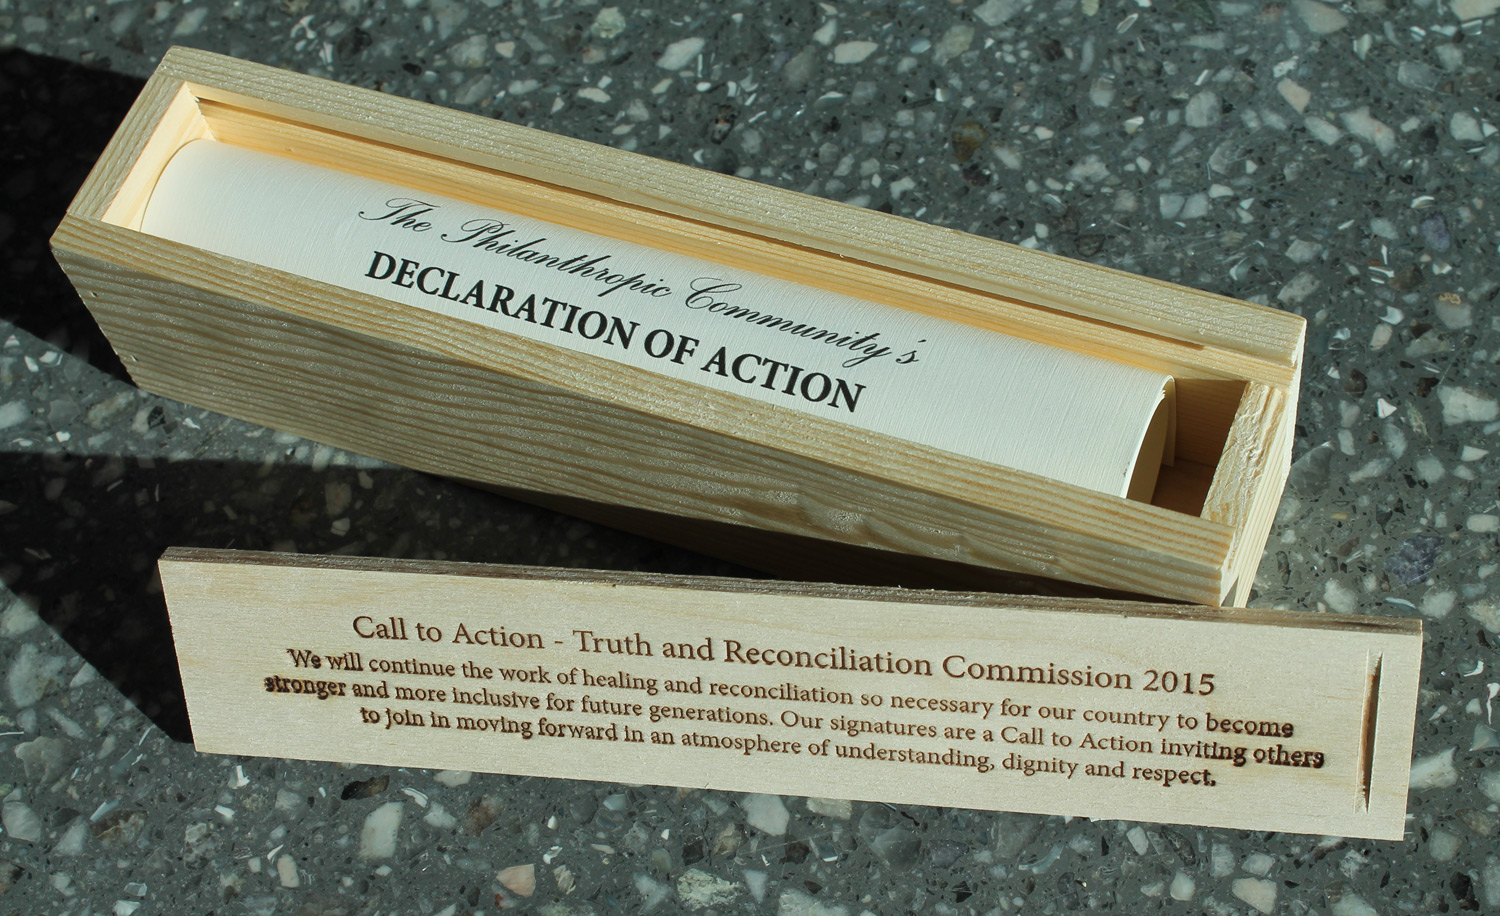 The Declaration was presented to United Way in a box representative of the red cedar TRC Bentwood Box commissioned by the TRC and used at national events around Canada.